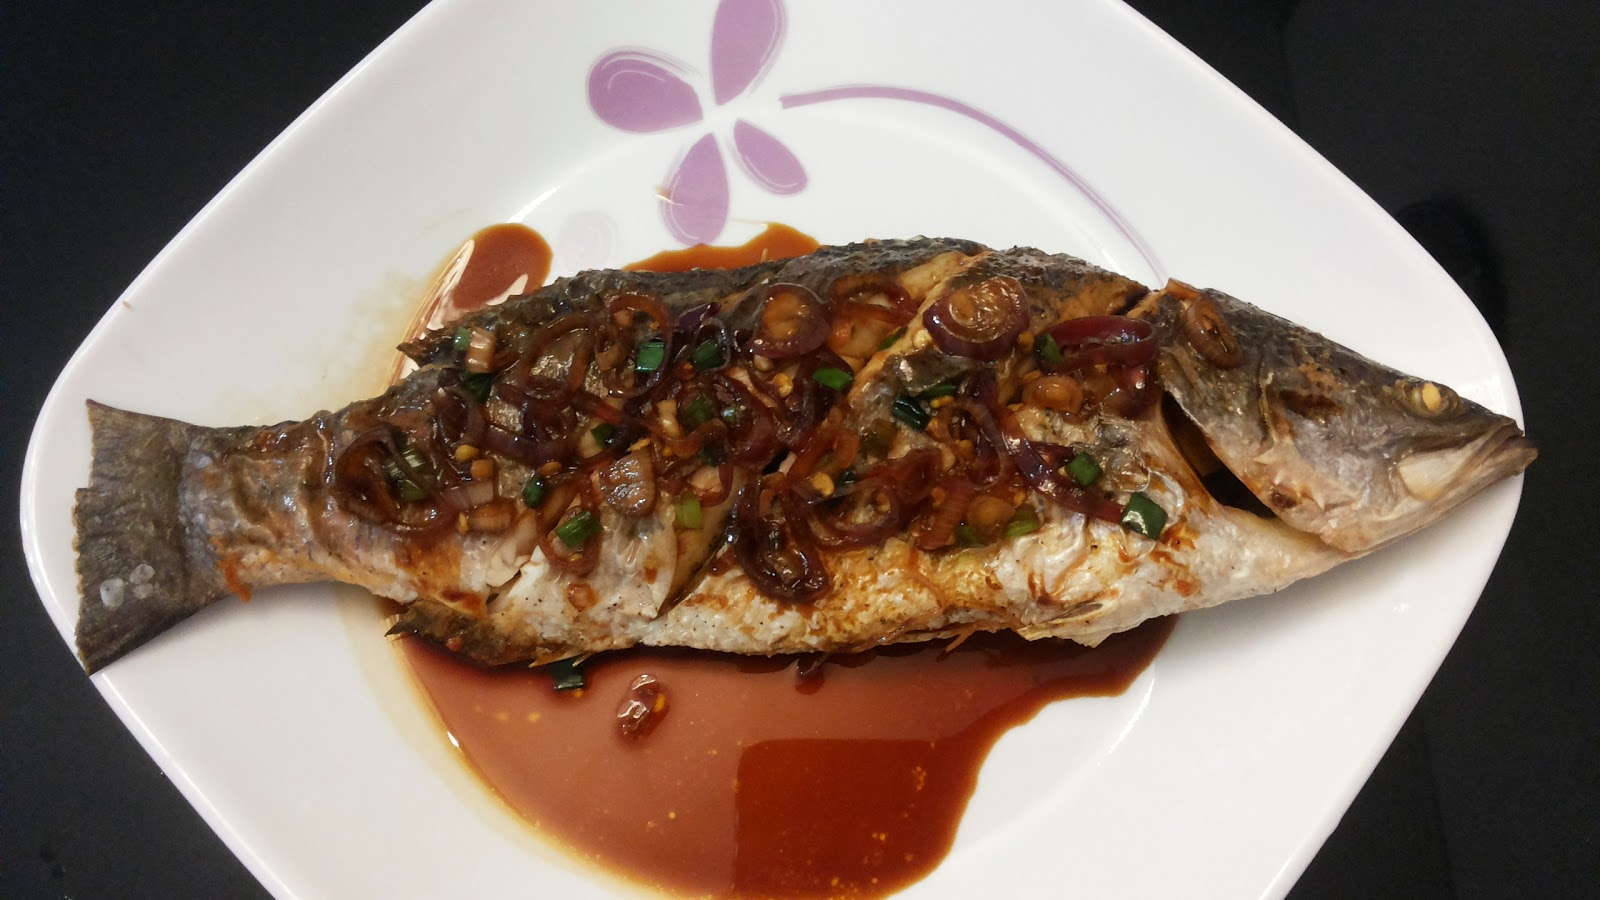 Krystal Wee Recipes: Air-Fried Sea Bass with Spicy Dark